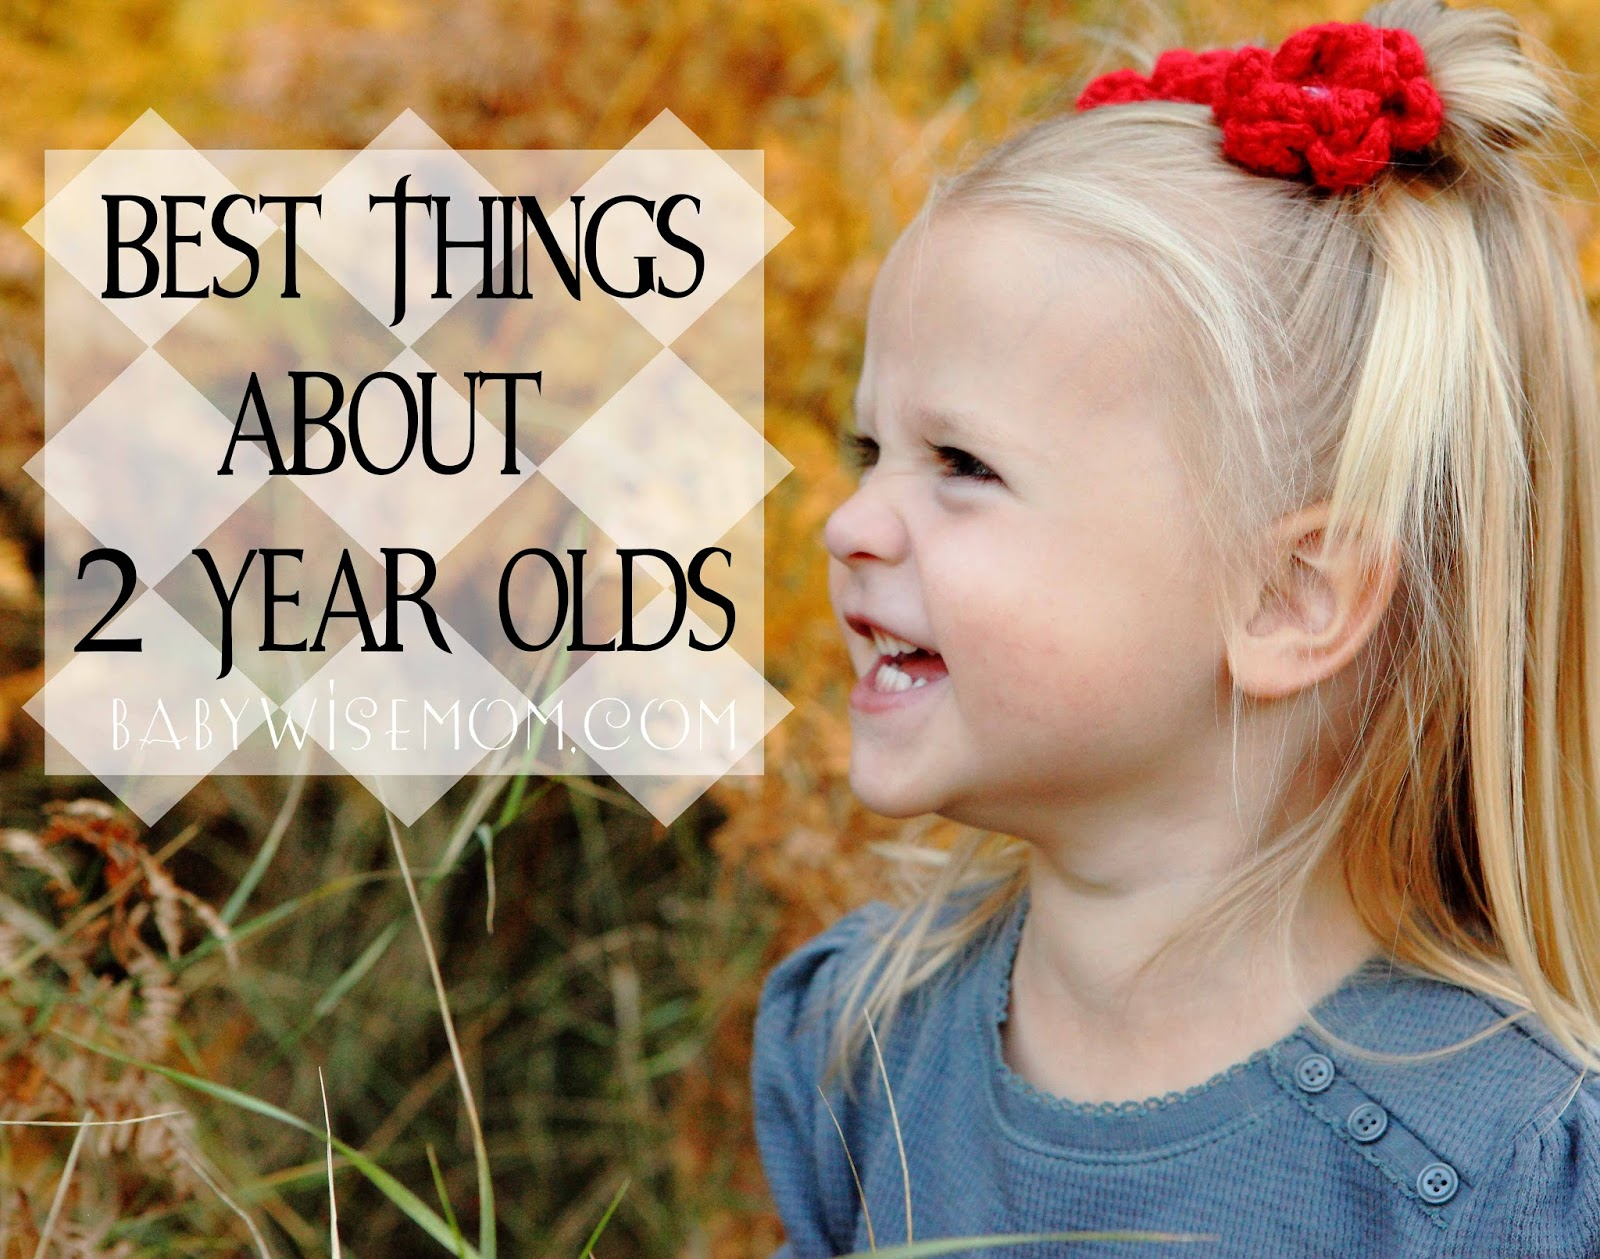 The Best Things About Two Year Olds